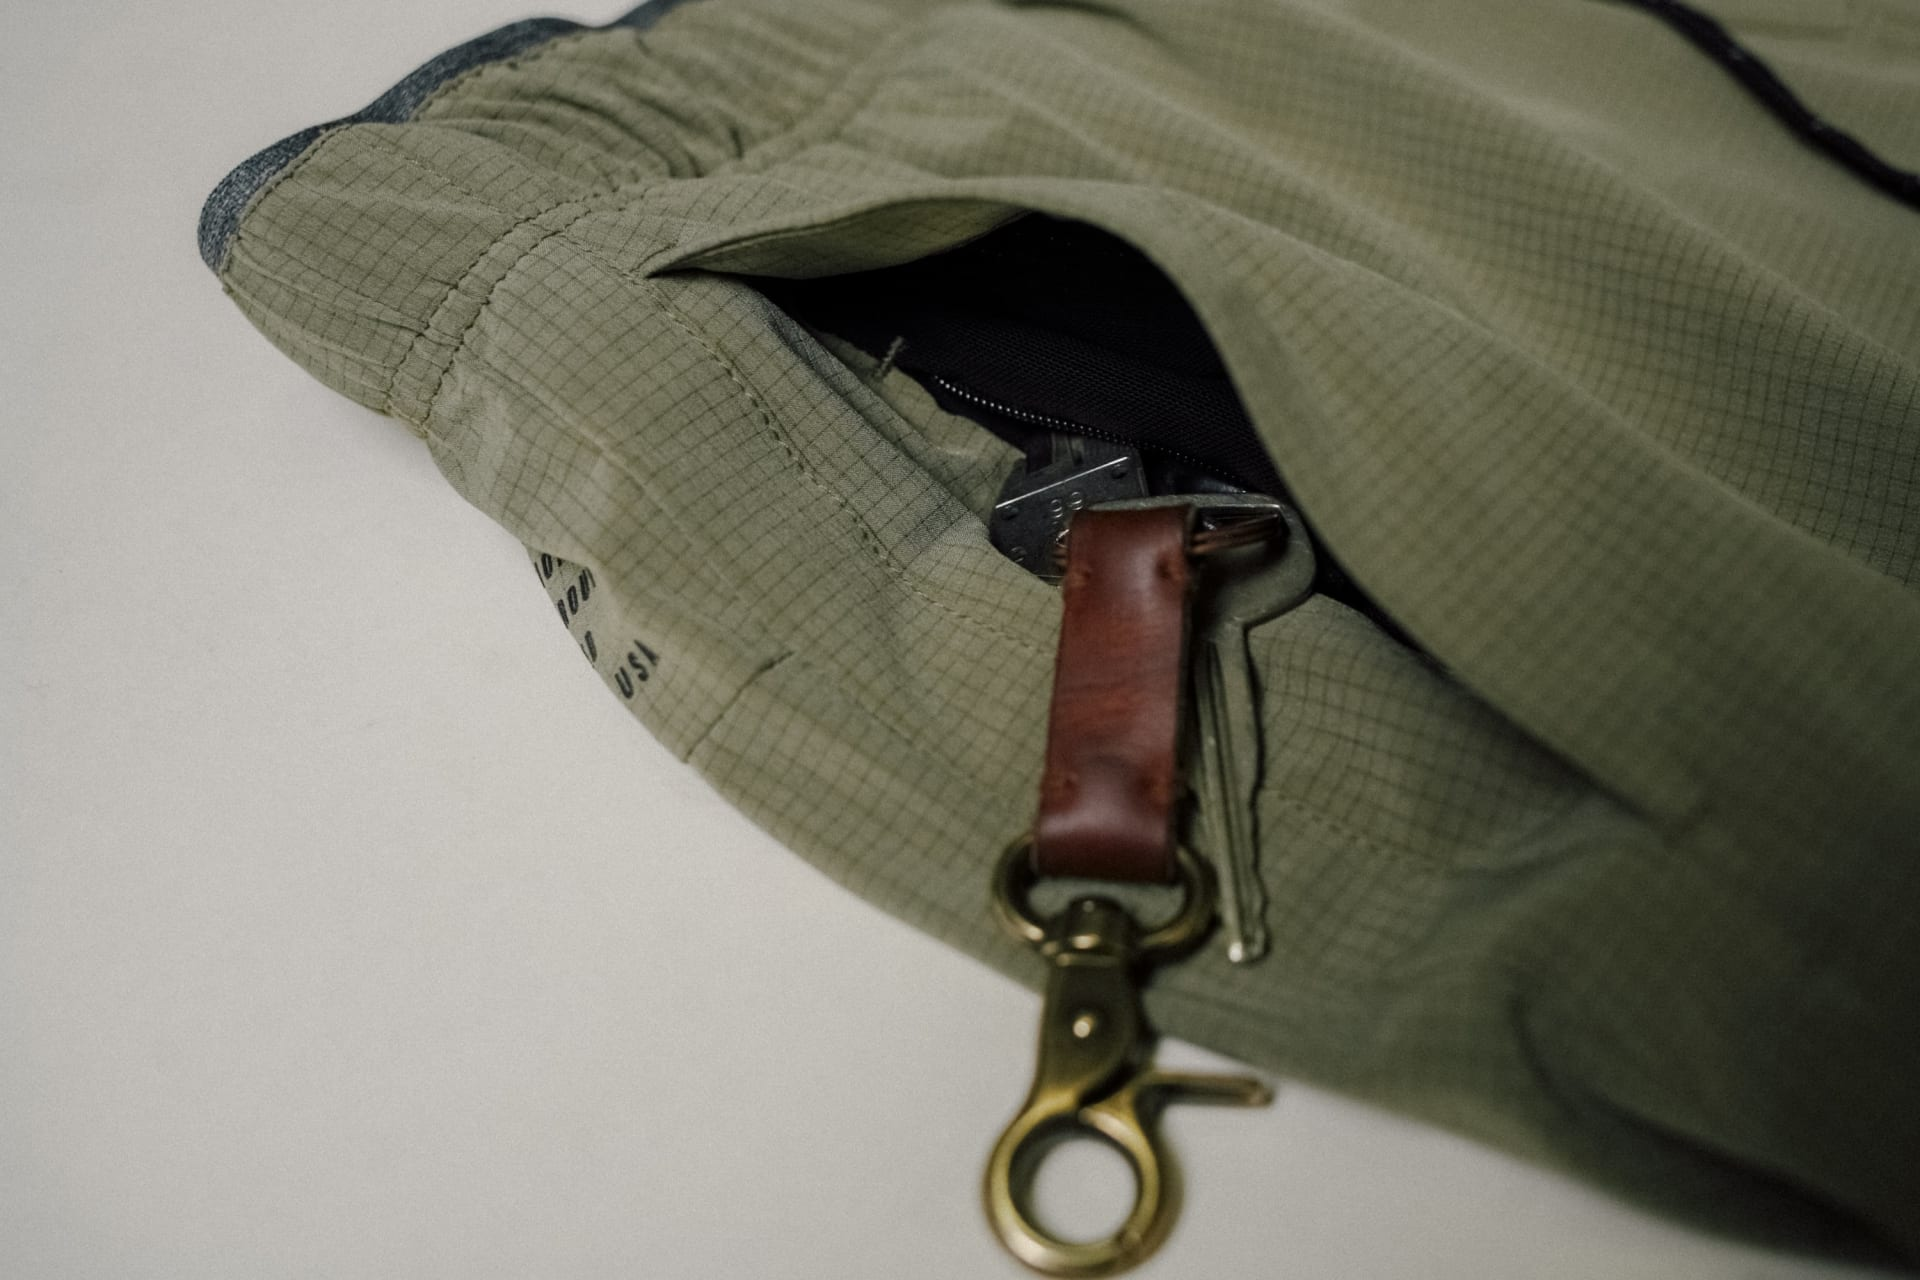 YKK Zipper Pocket